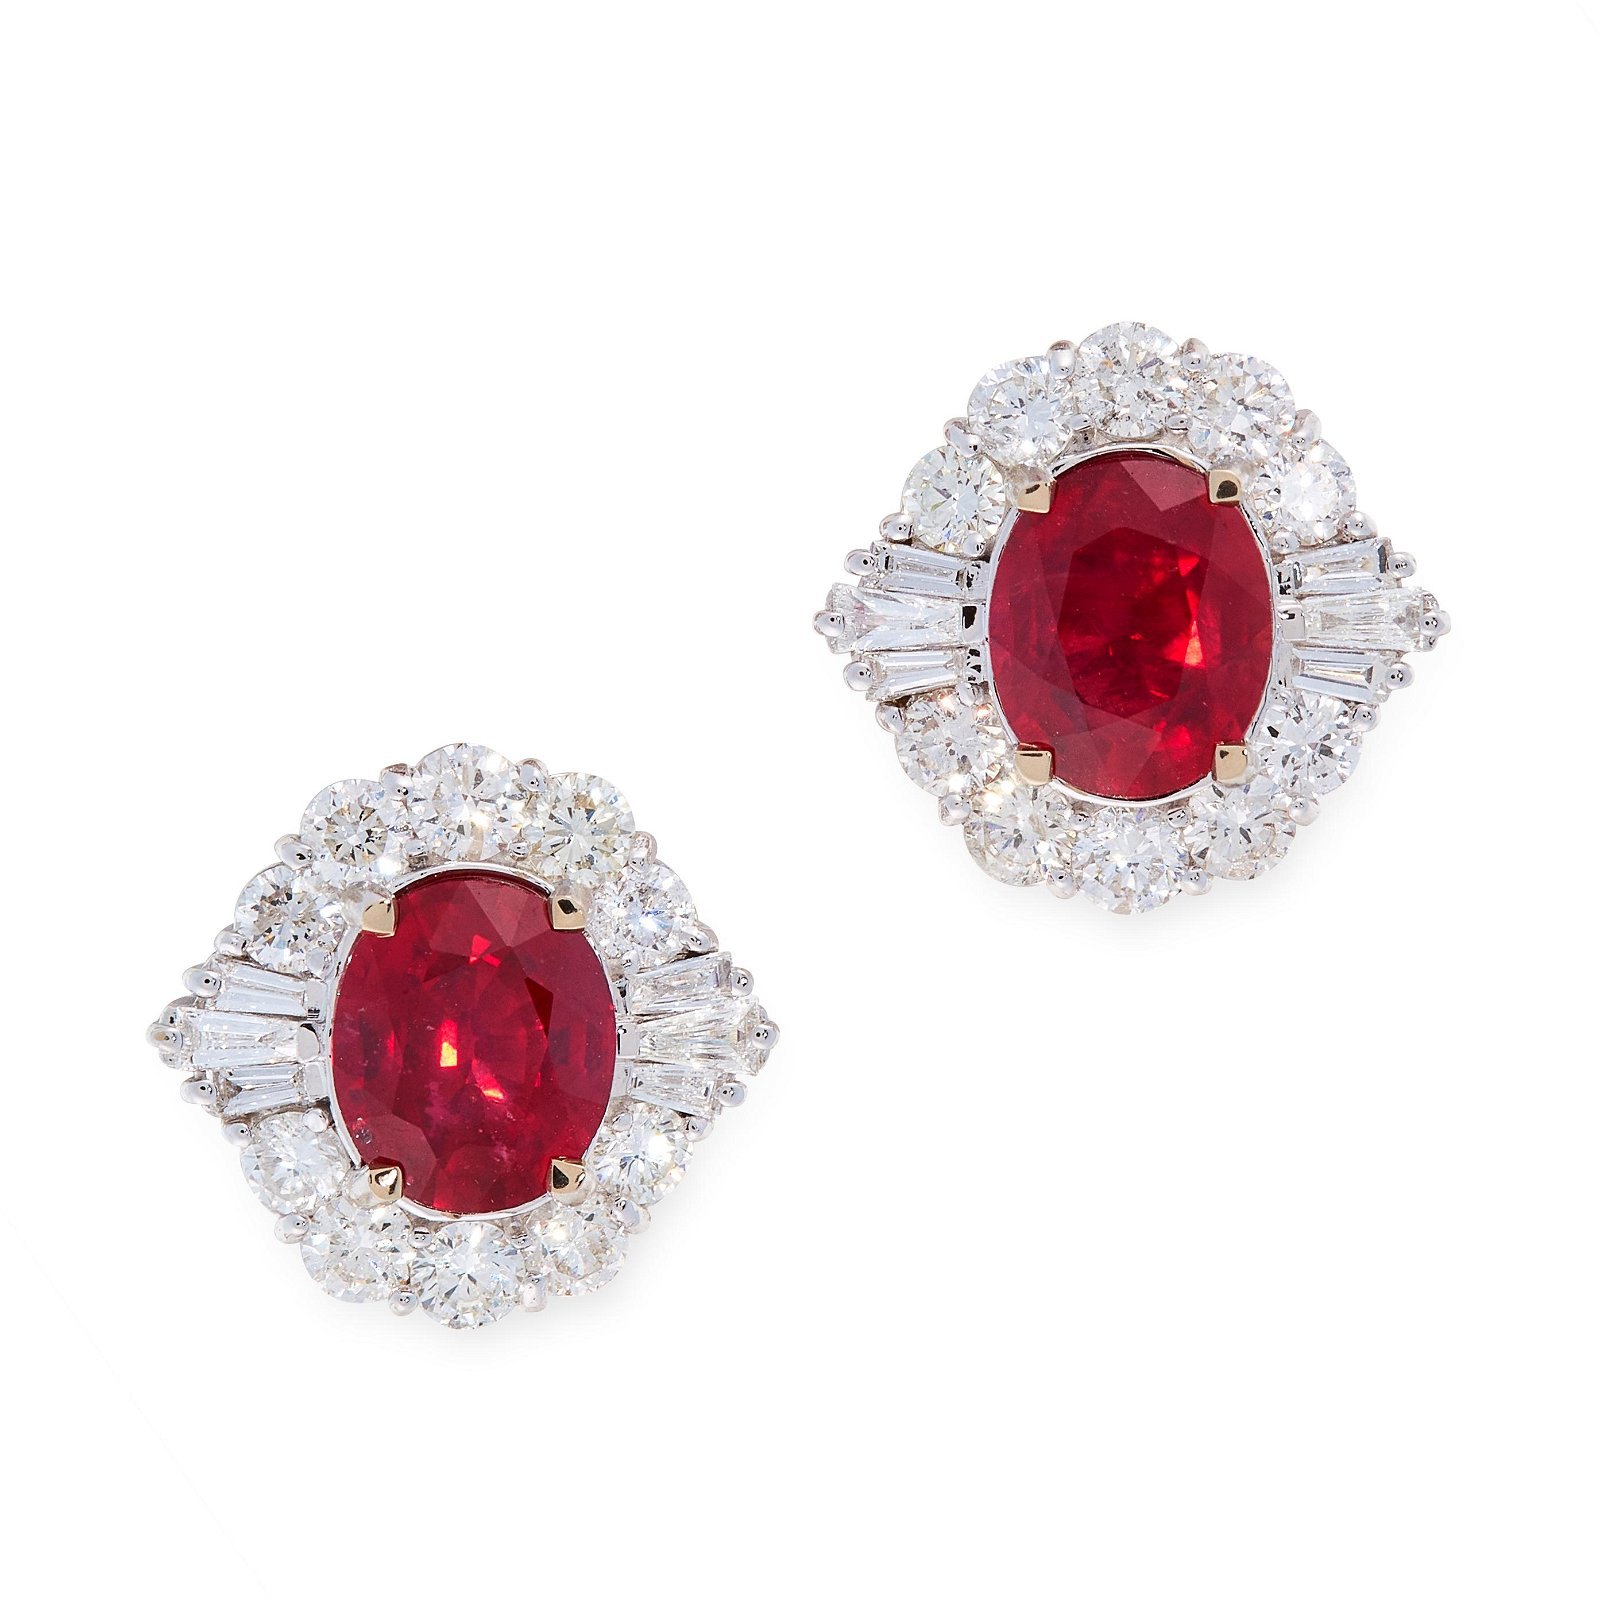 A PAIR OF RUBY AND DIAMOND EARRINGS in 18ct white gold,